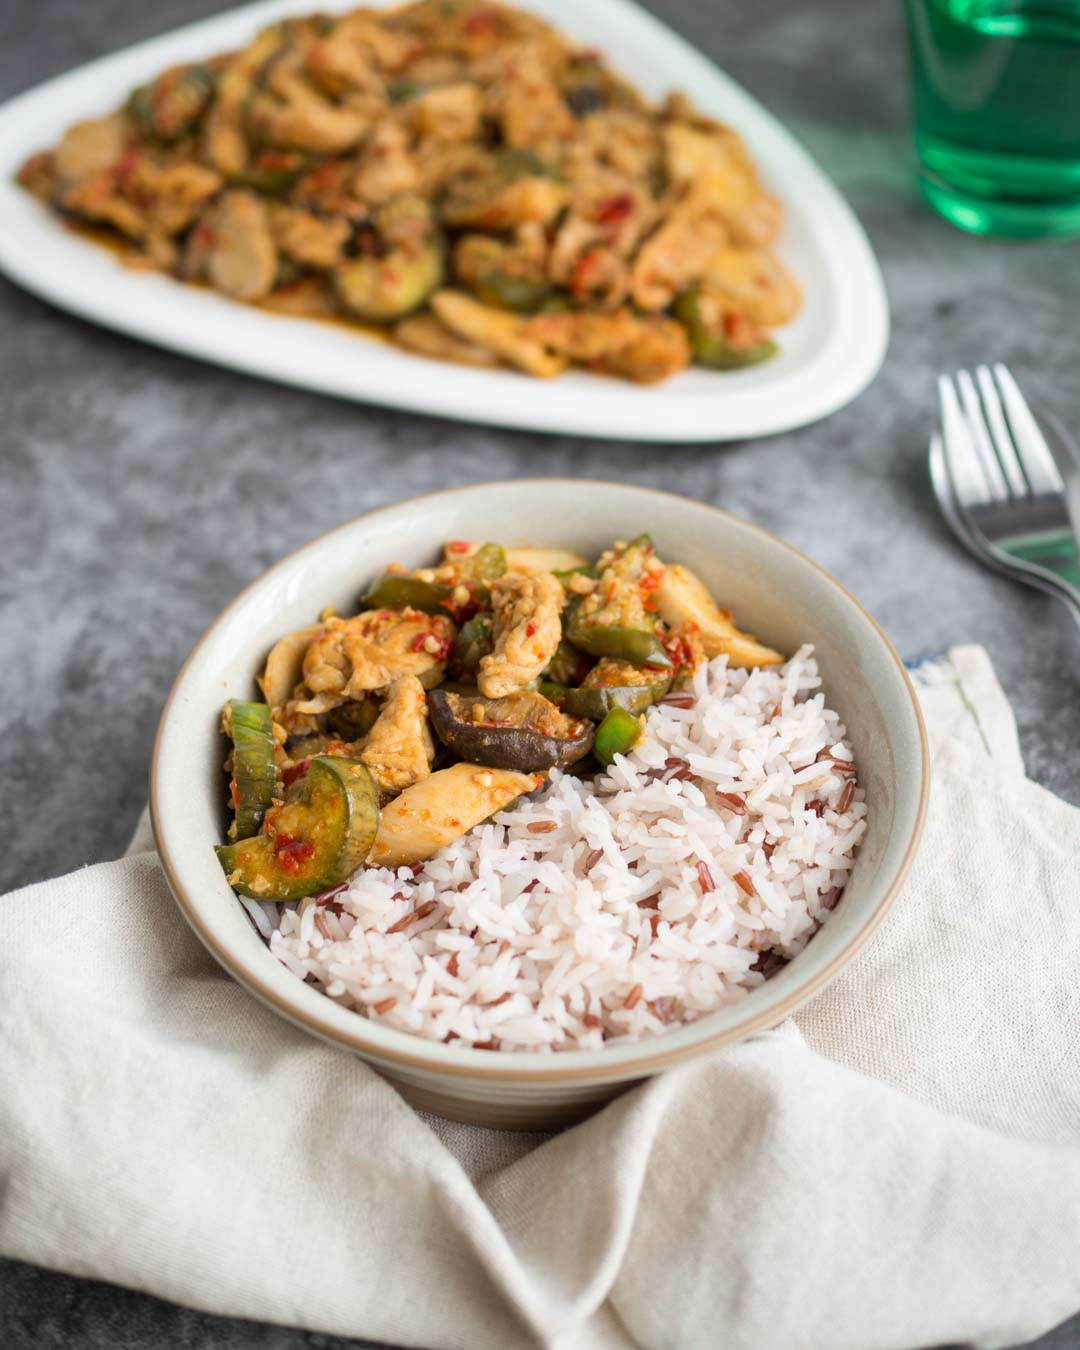 spicy thai eggpplant and mushroom stir fry with rice